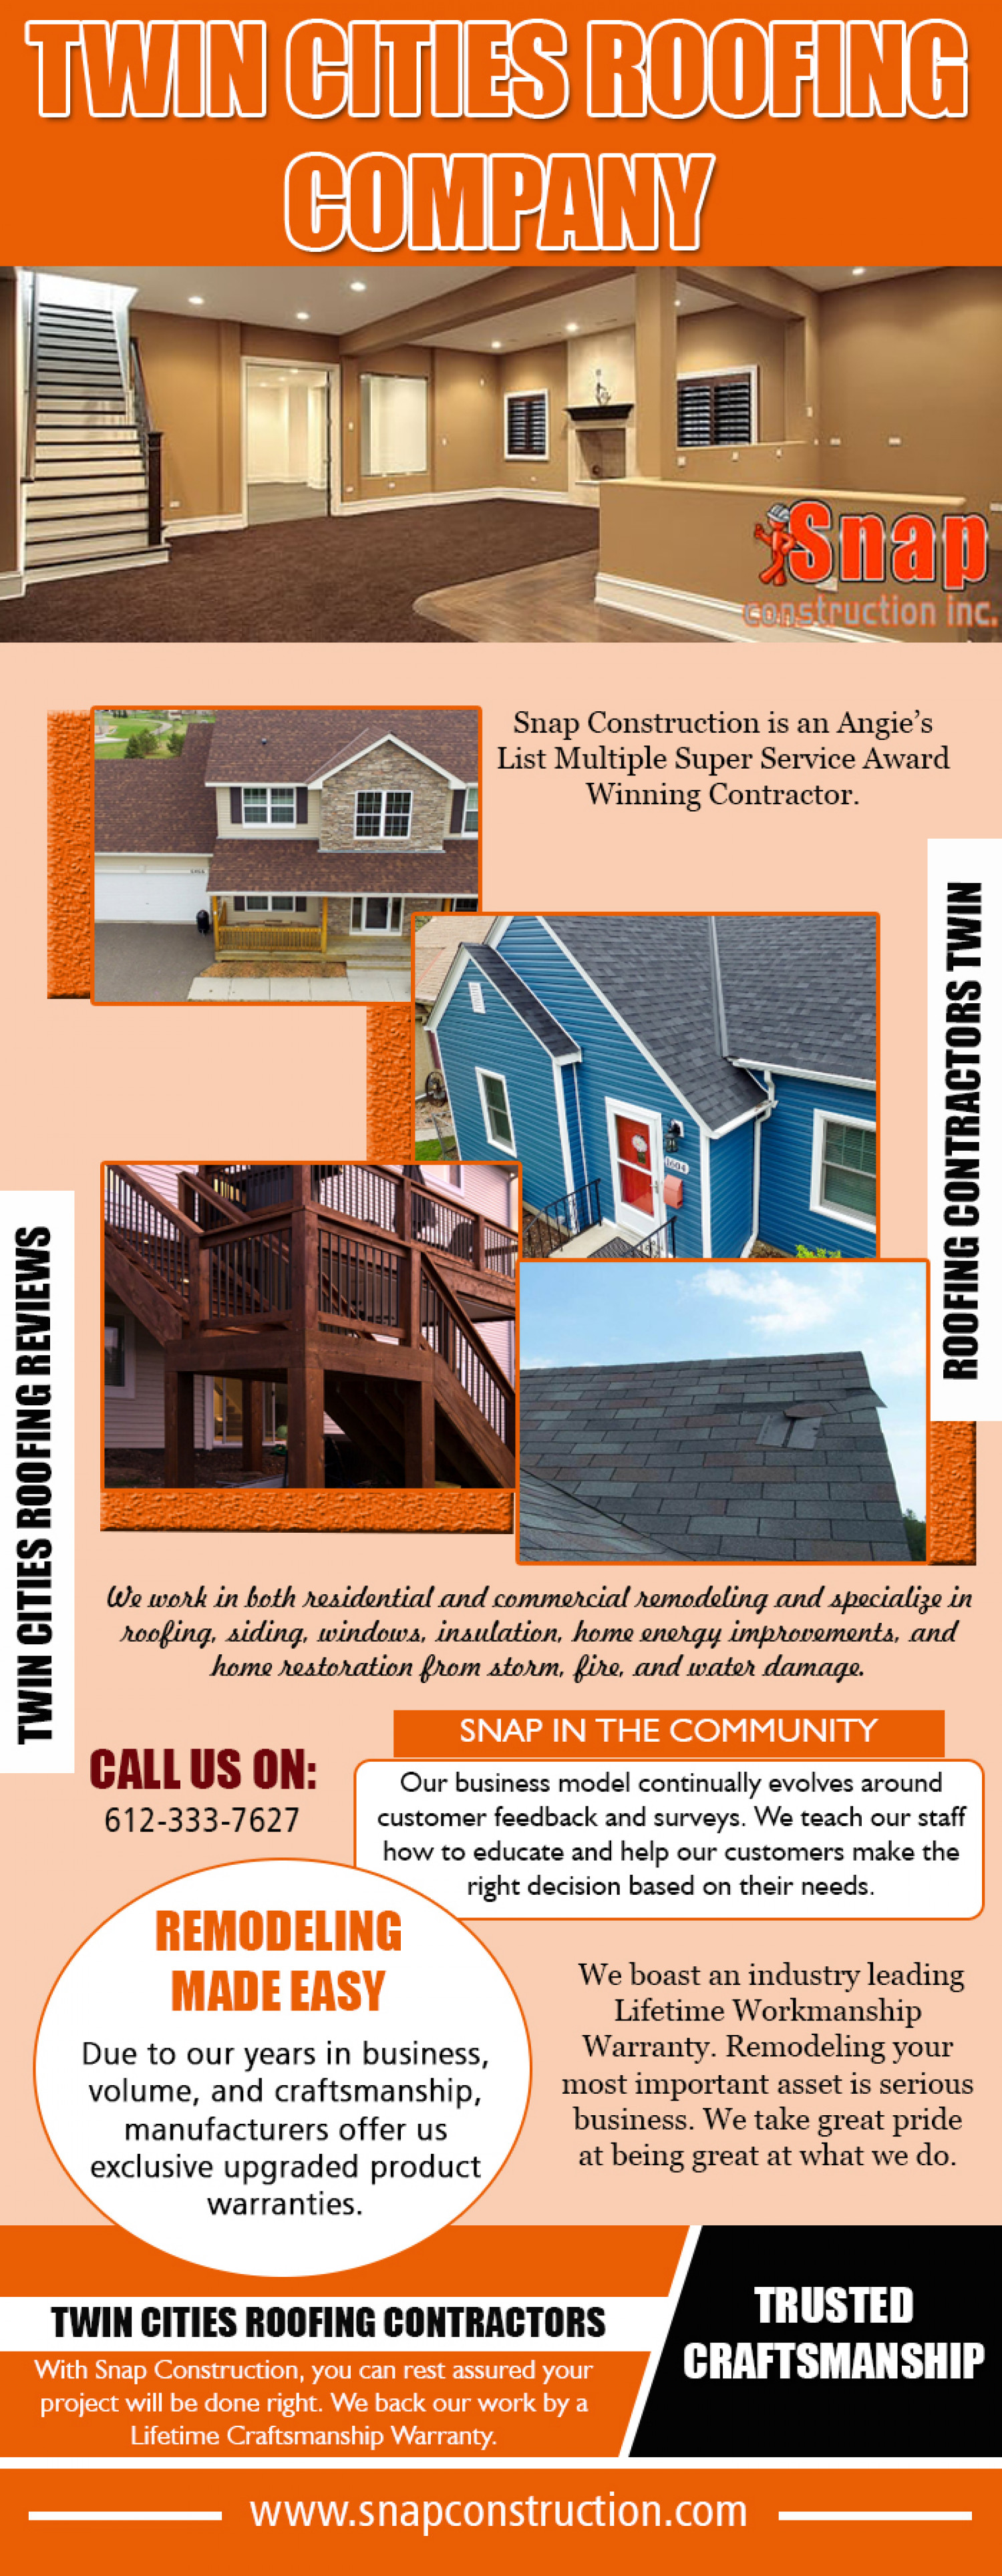 Twin Cities Roofing Company Infographic